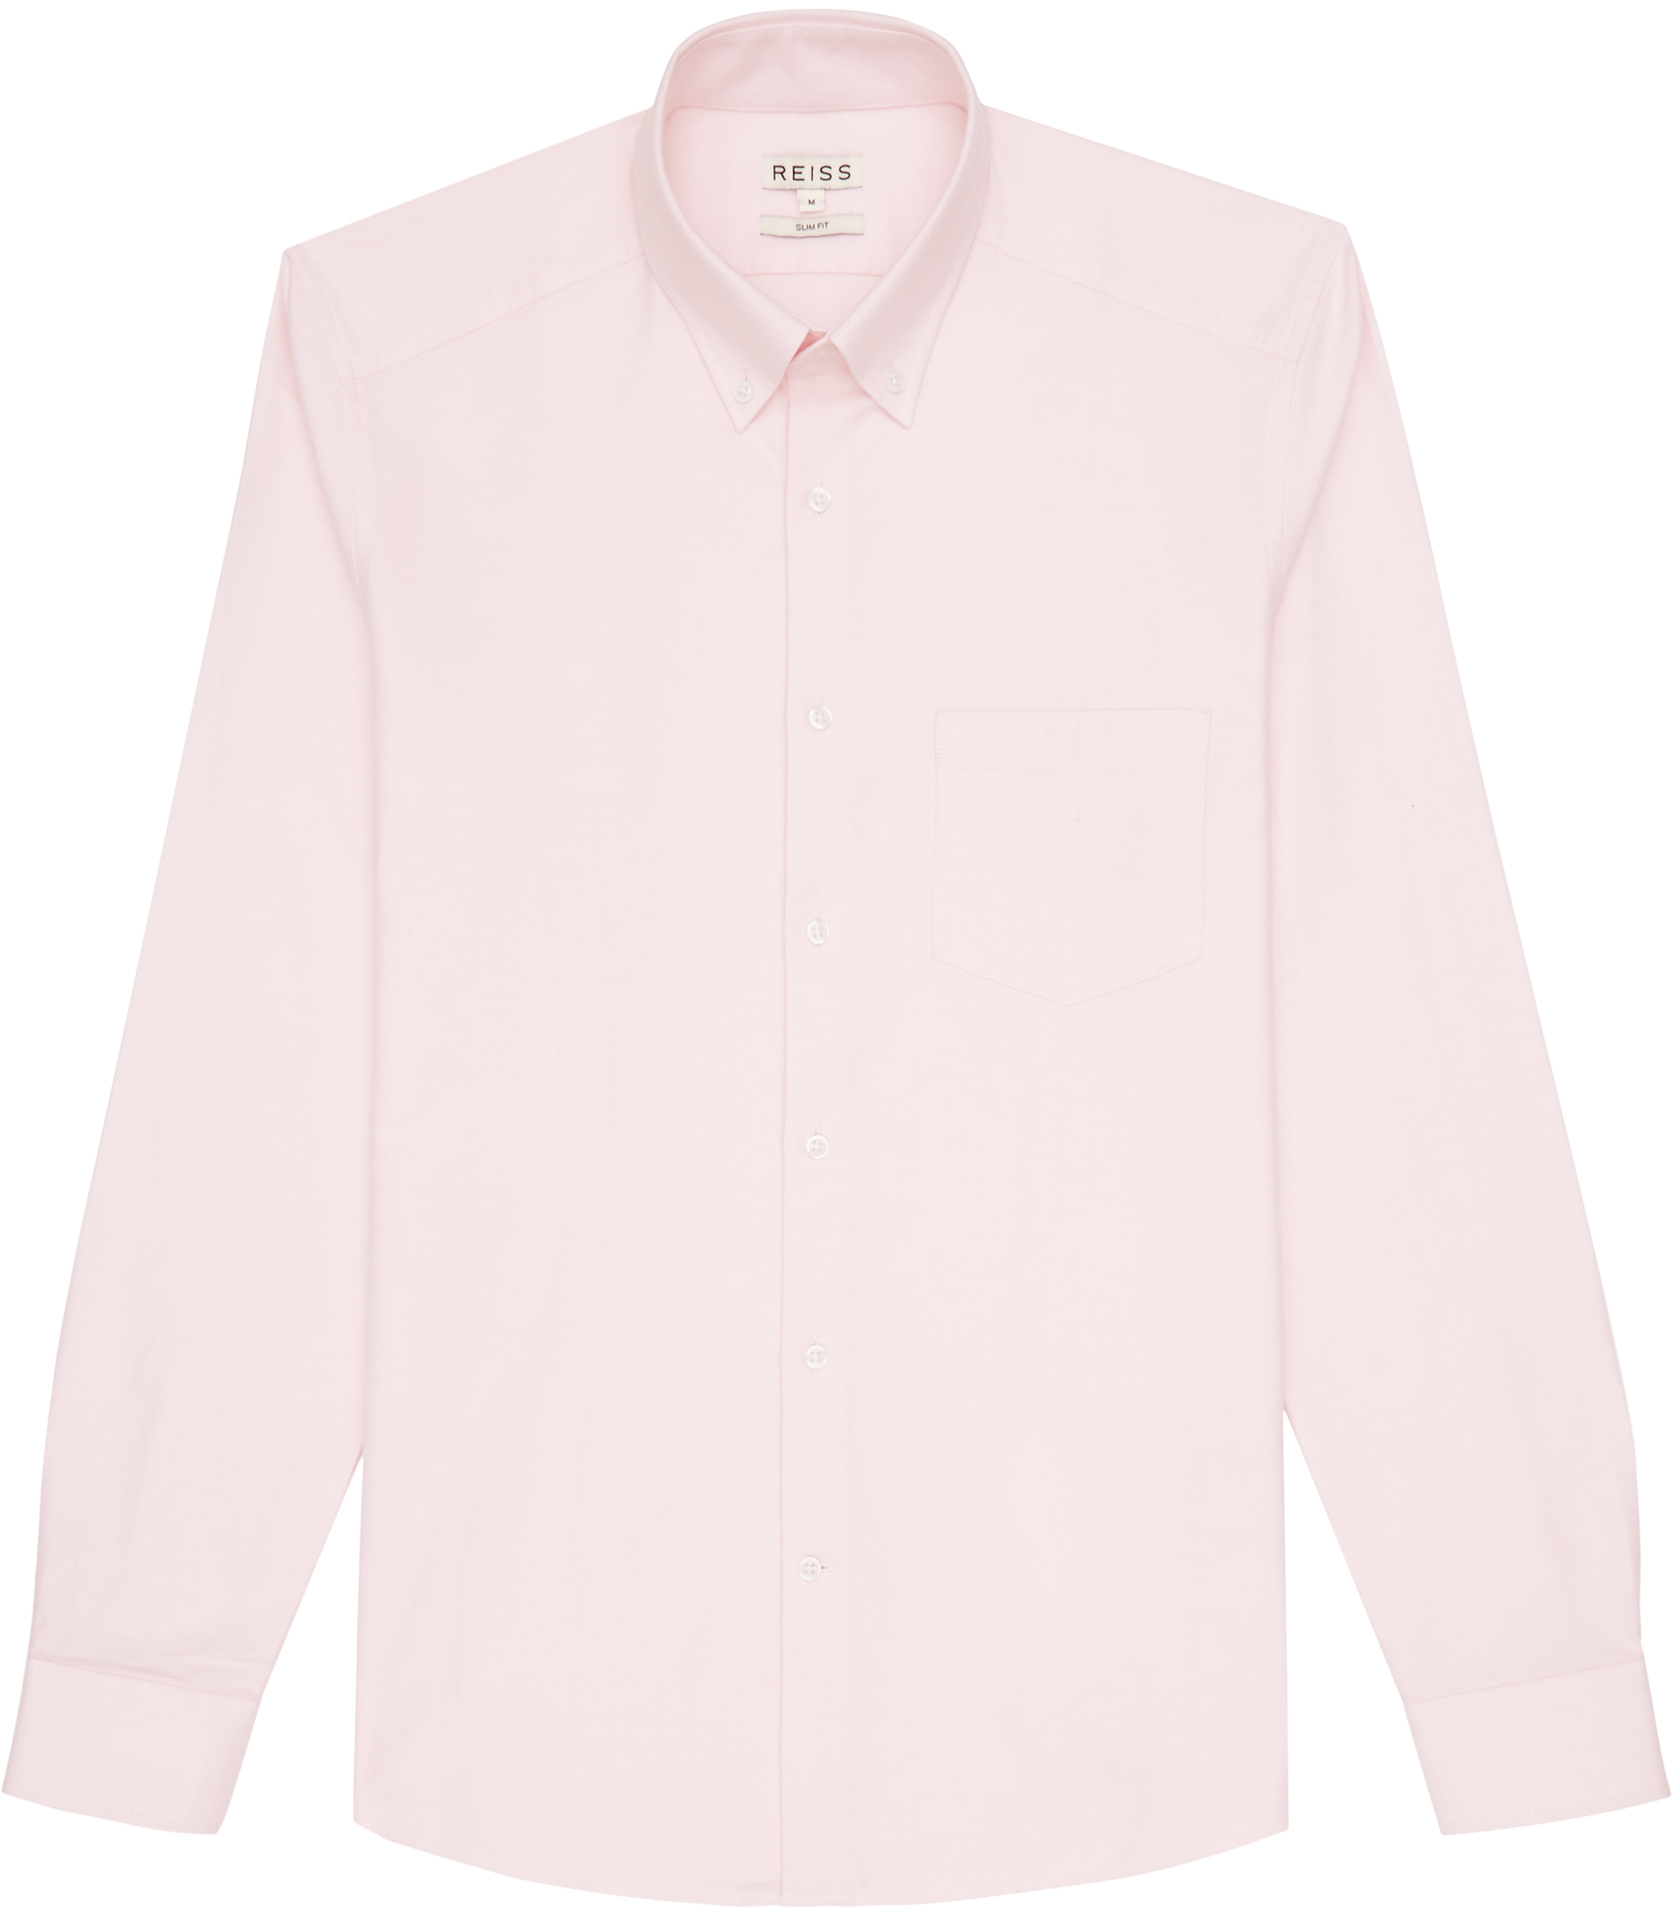 Reiss aintree oxford shirt in pink for men lyst for Pink oxford shirt men